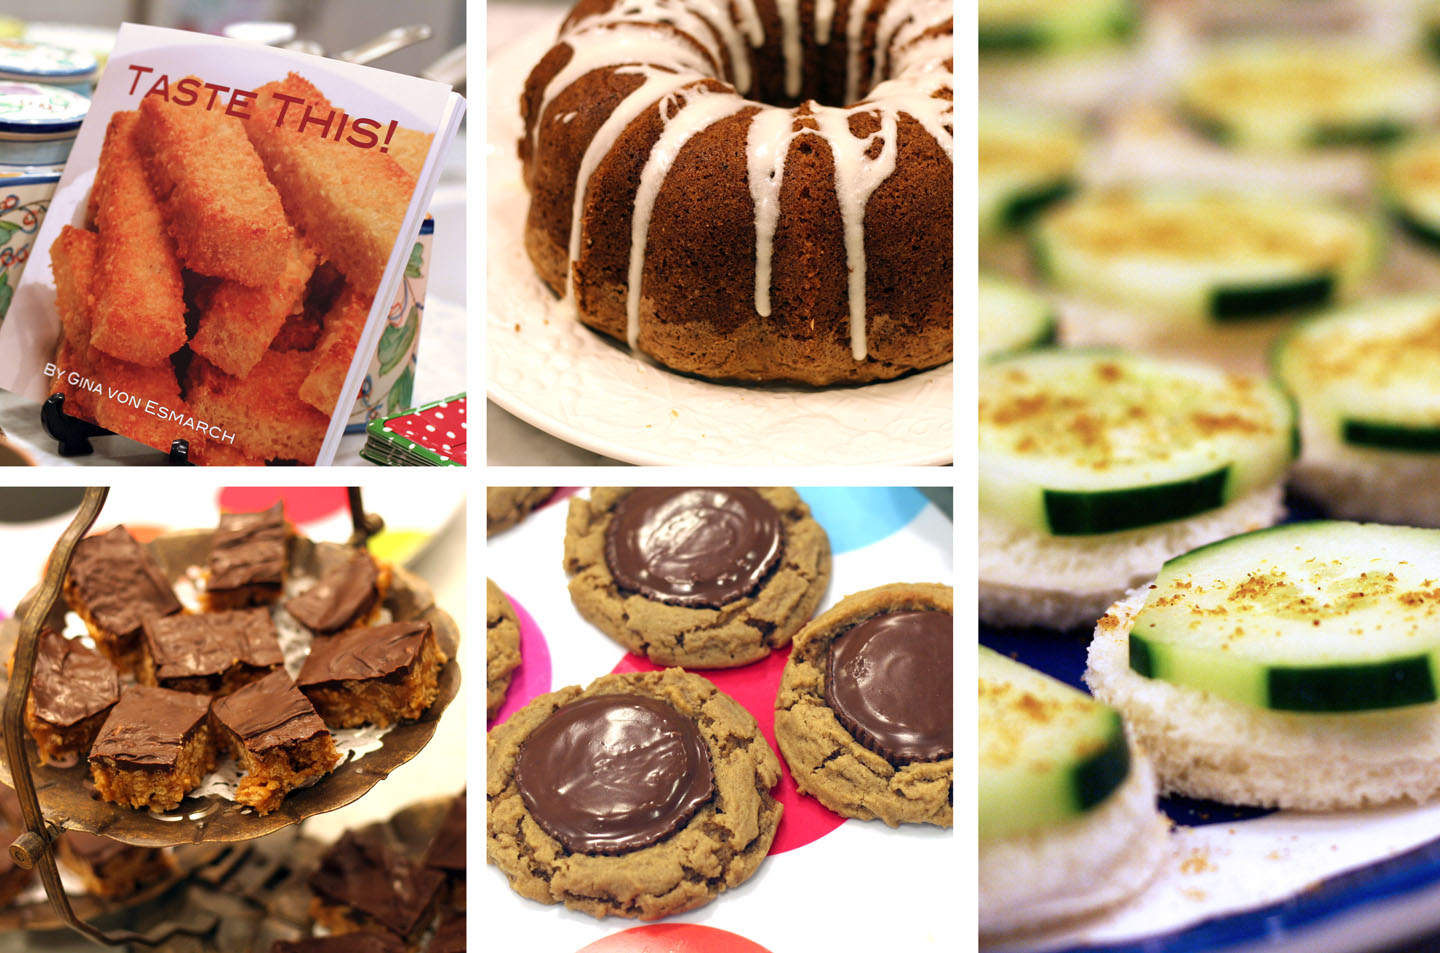 http://thisweekfordinner.com/wp-content/uploads/2009/01/collage.jpg